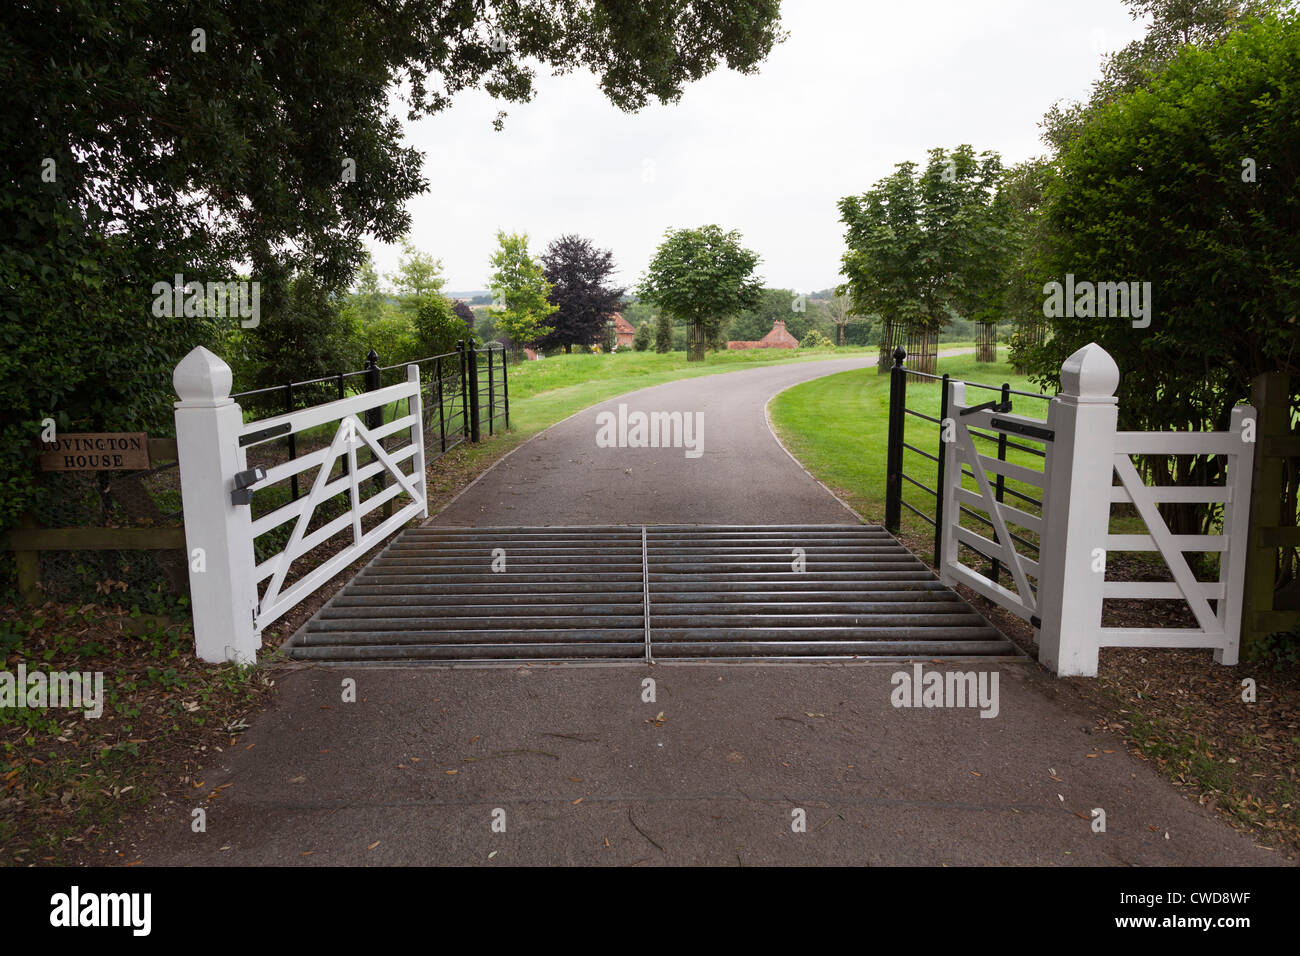 Cattle Grid Across Entrance To Country House With White